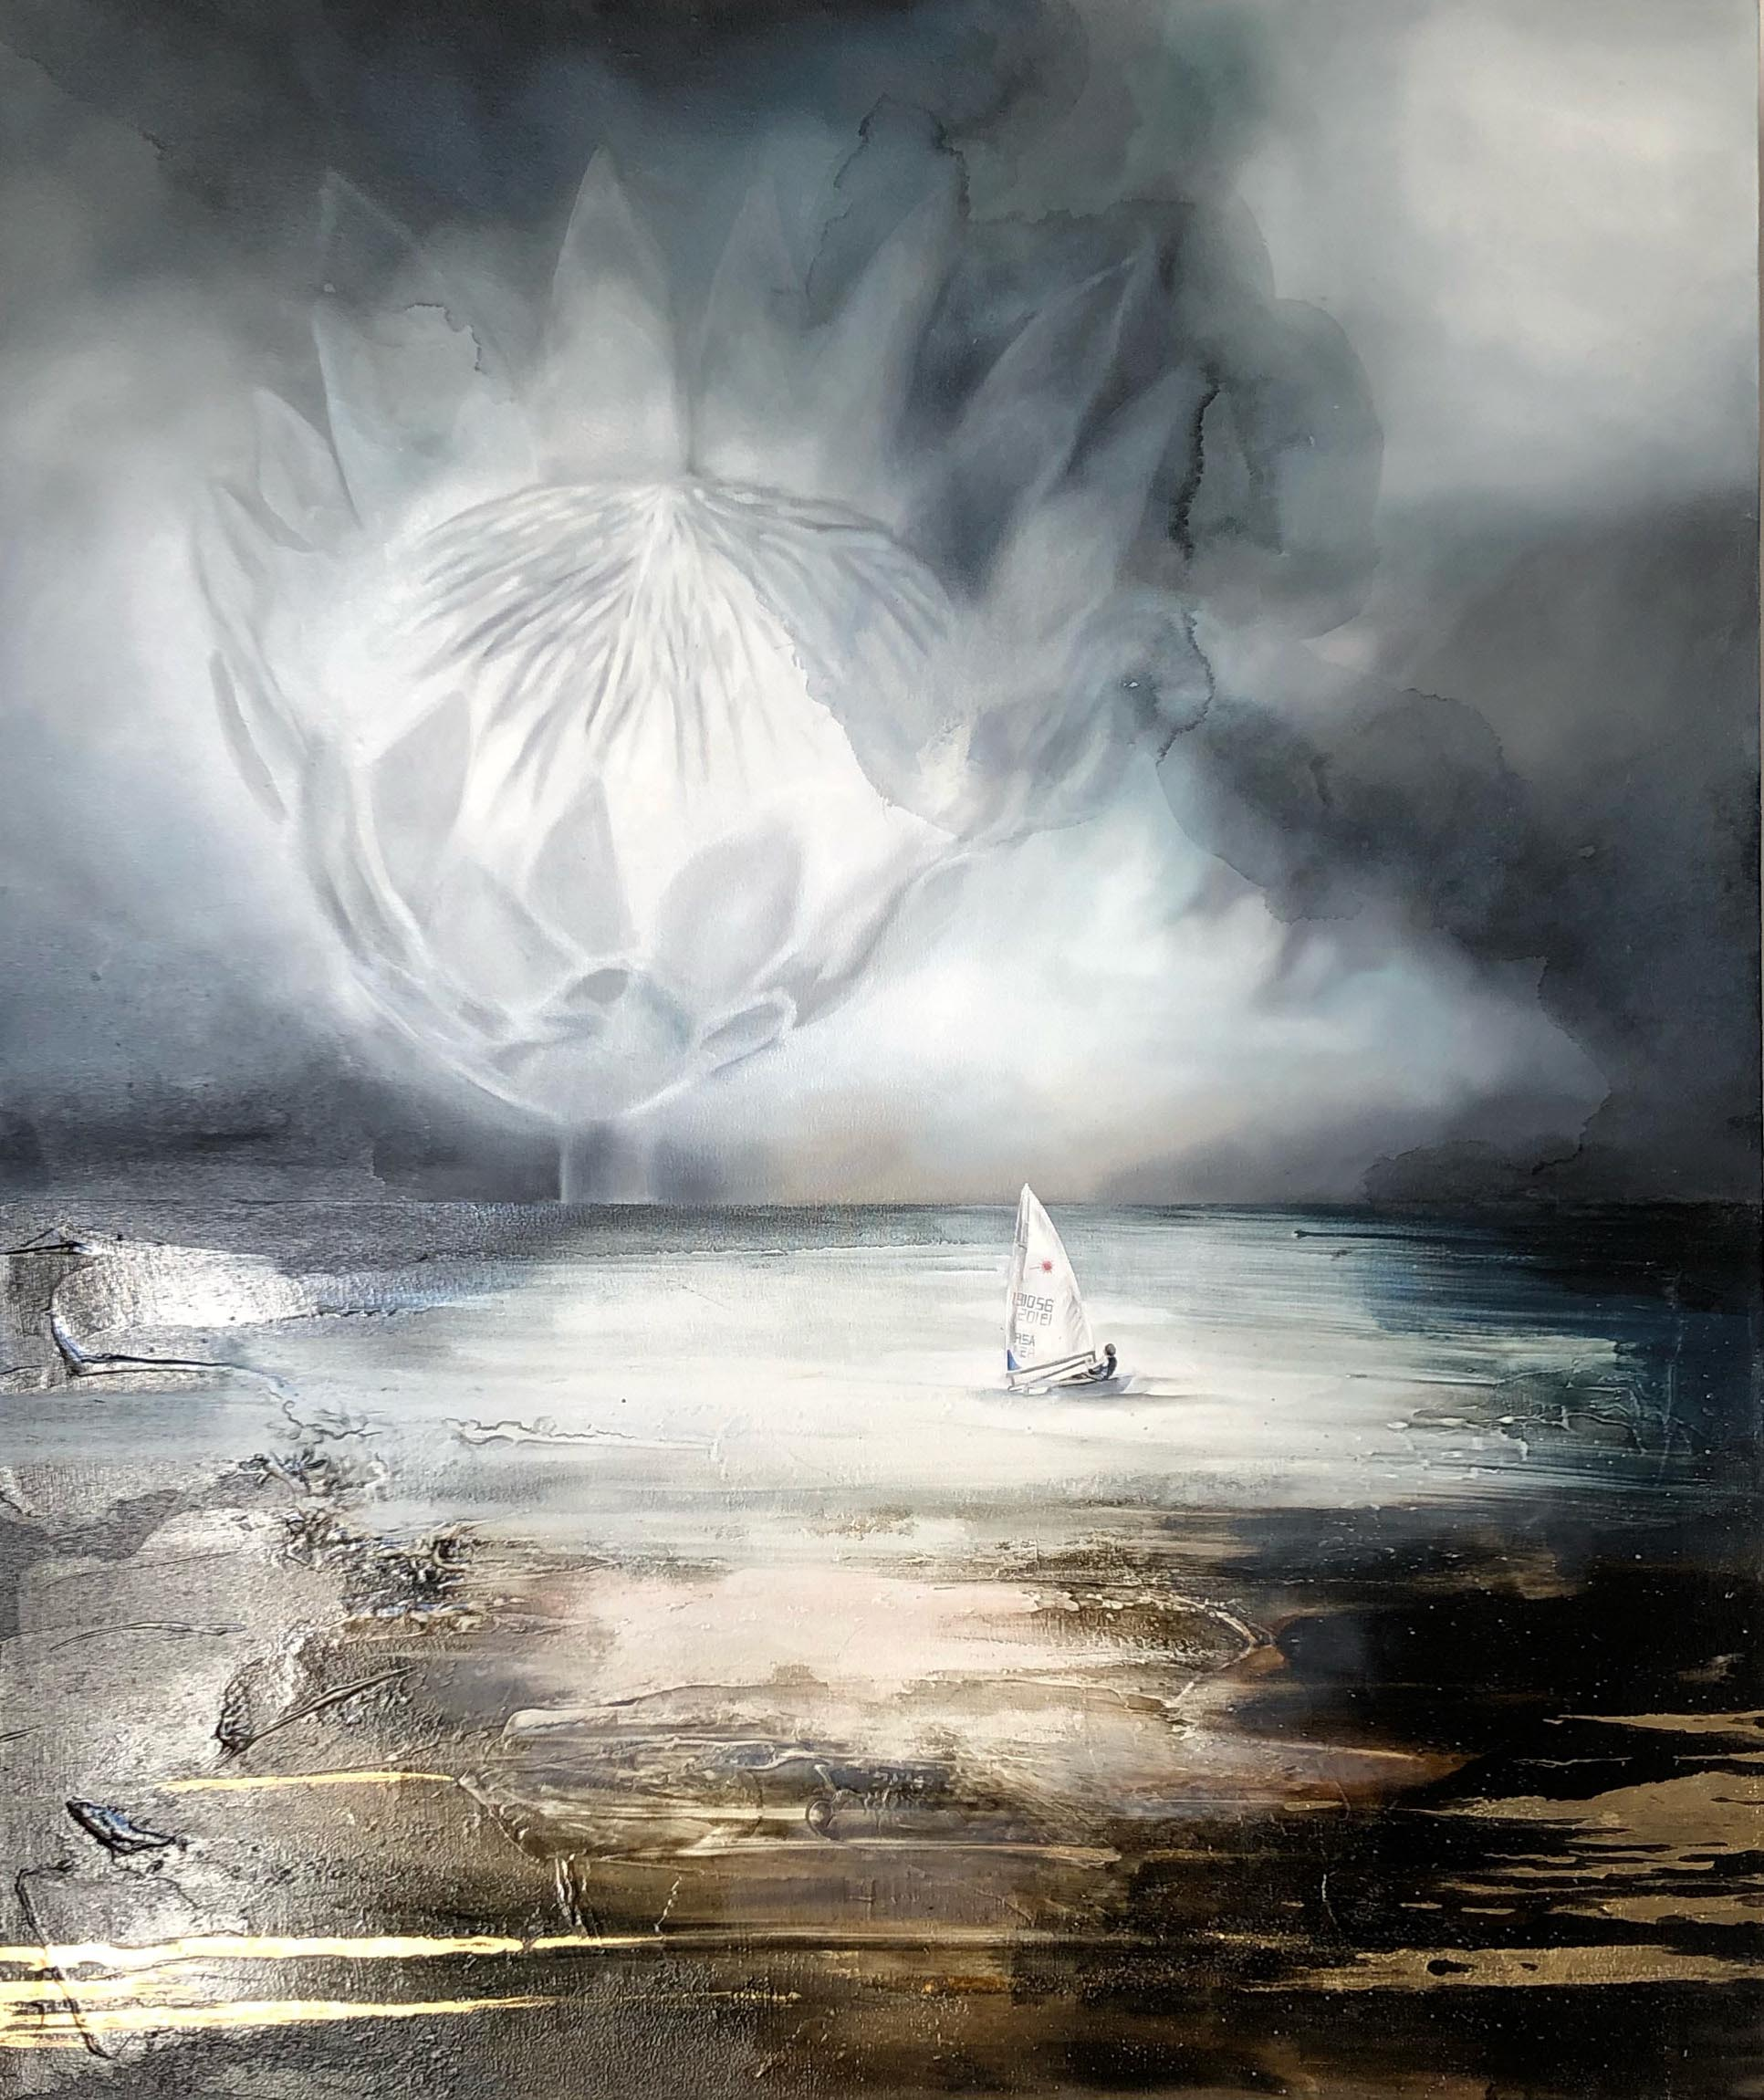 Vicky Sanders Seascapes - In Memory of Cullen